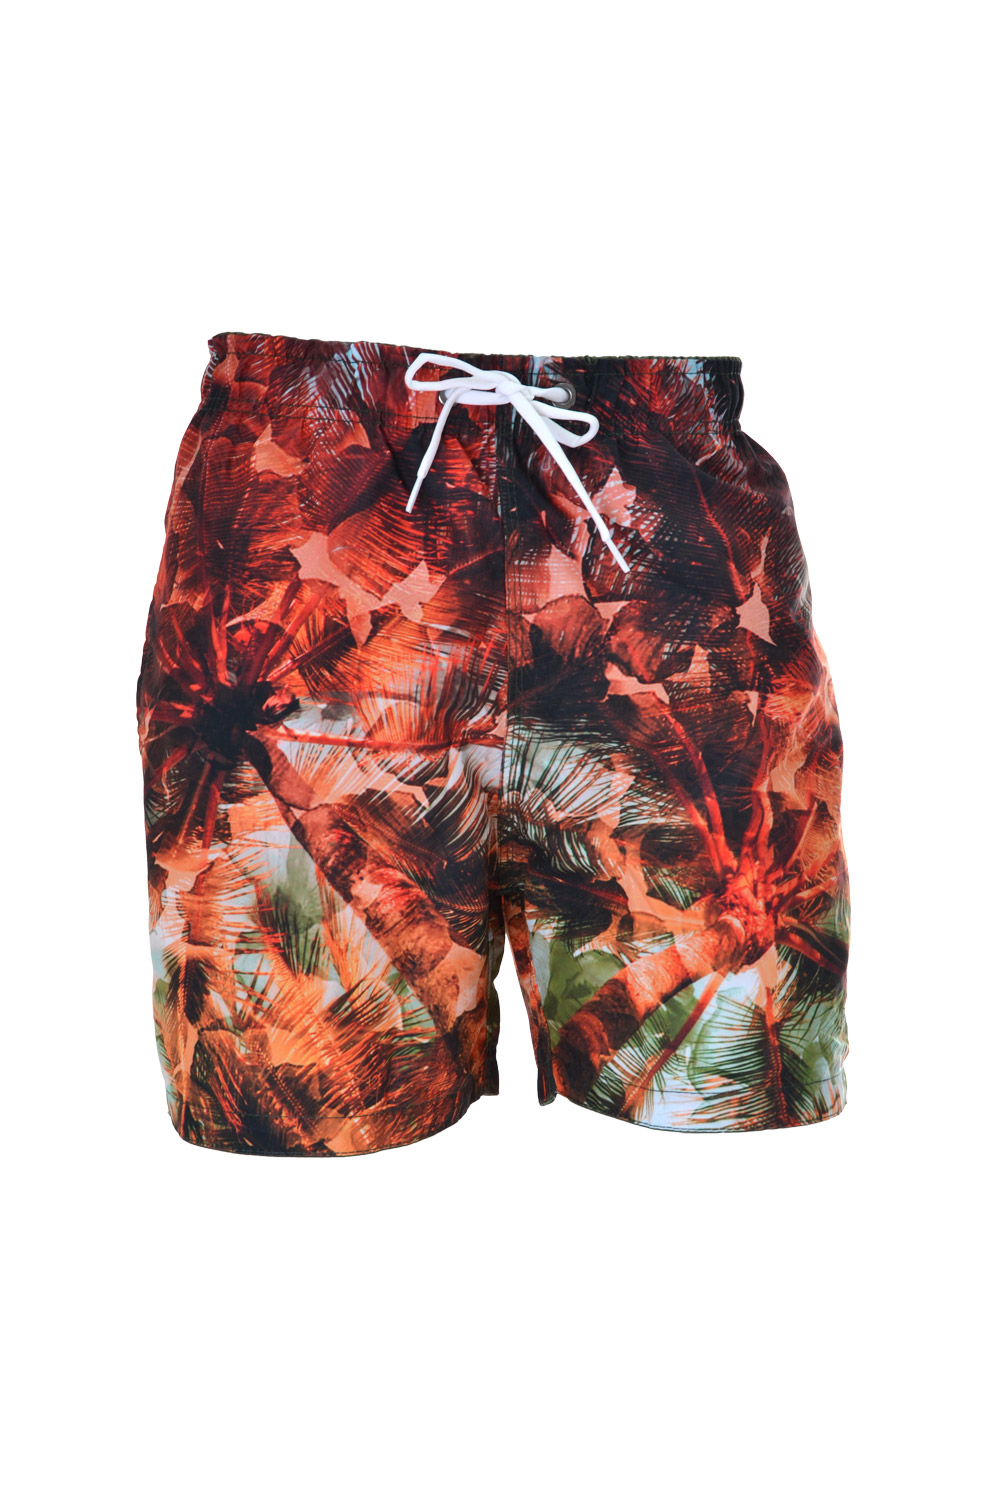 SHORTS MARINE POLIESTER CONCEPTS ESTAMPA MULTICOLOR